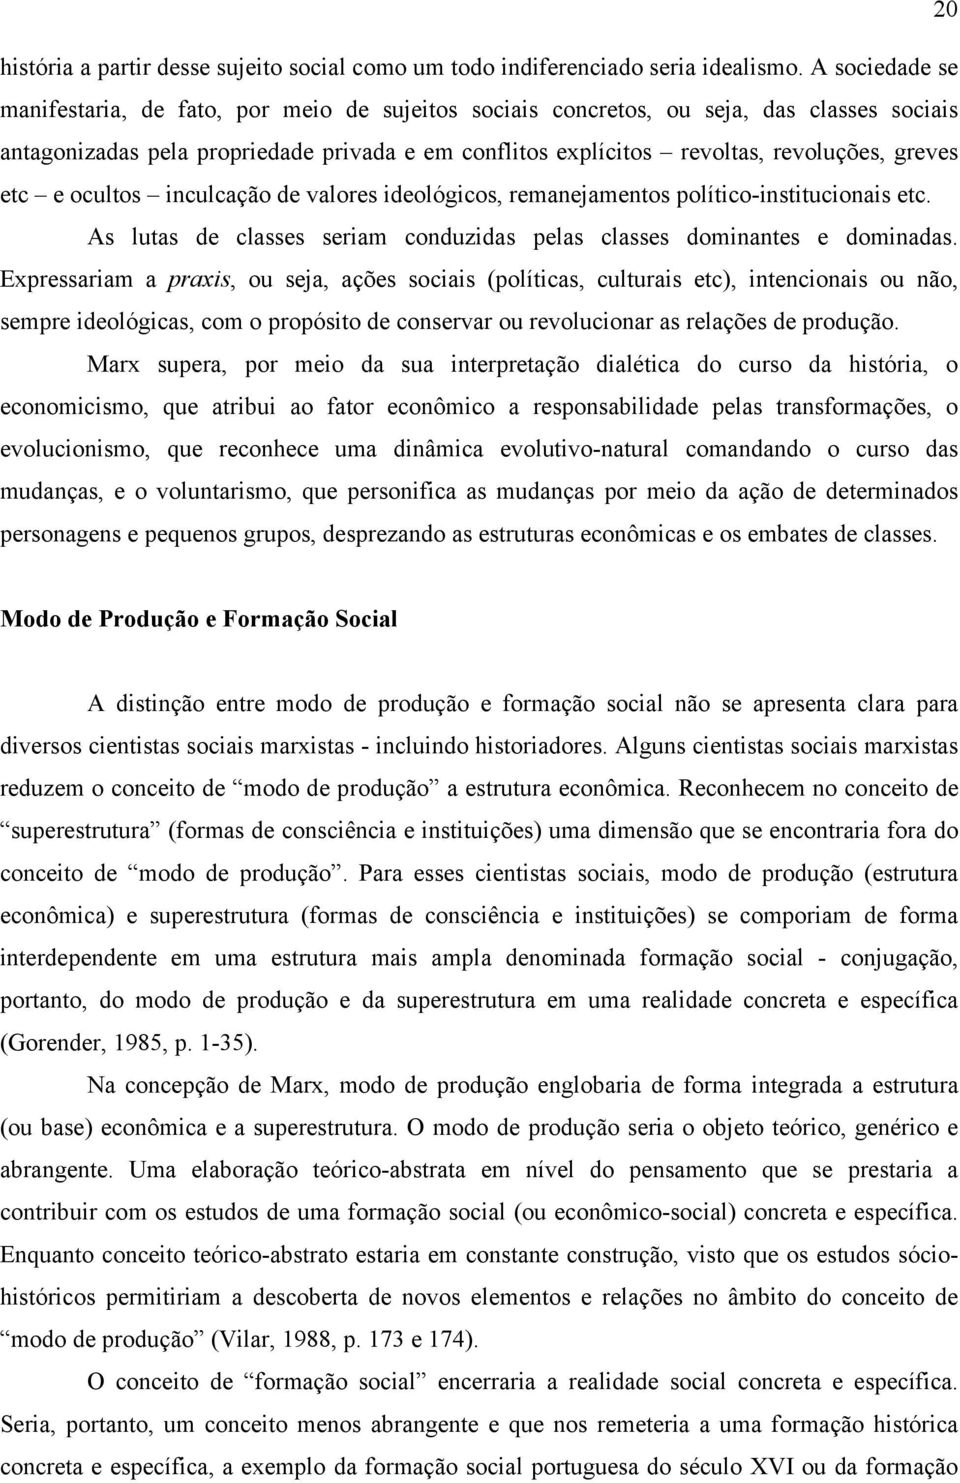 greves etc e ocultos inculcação de valores ideológicos, remanejamentos político-institucionais etc. As lutas de classes seriam conduzidas pelas classes dominantes e dominadas.